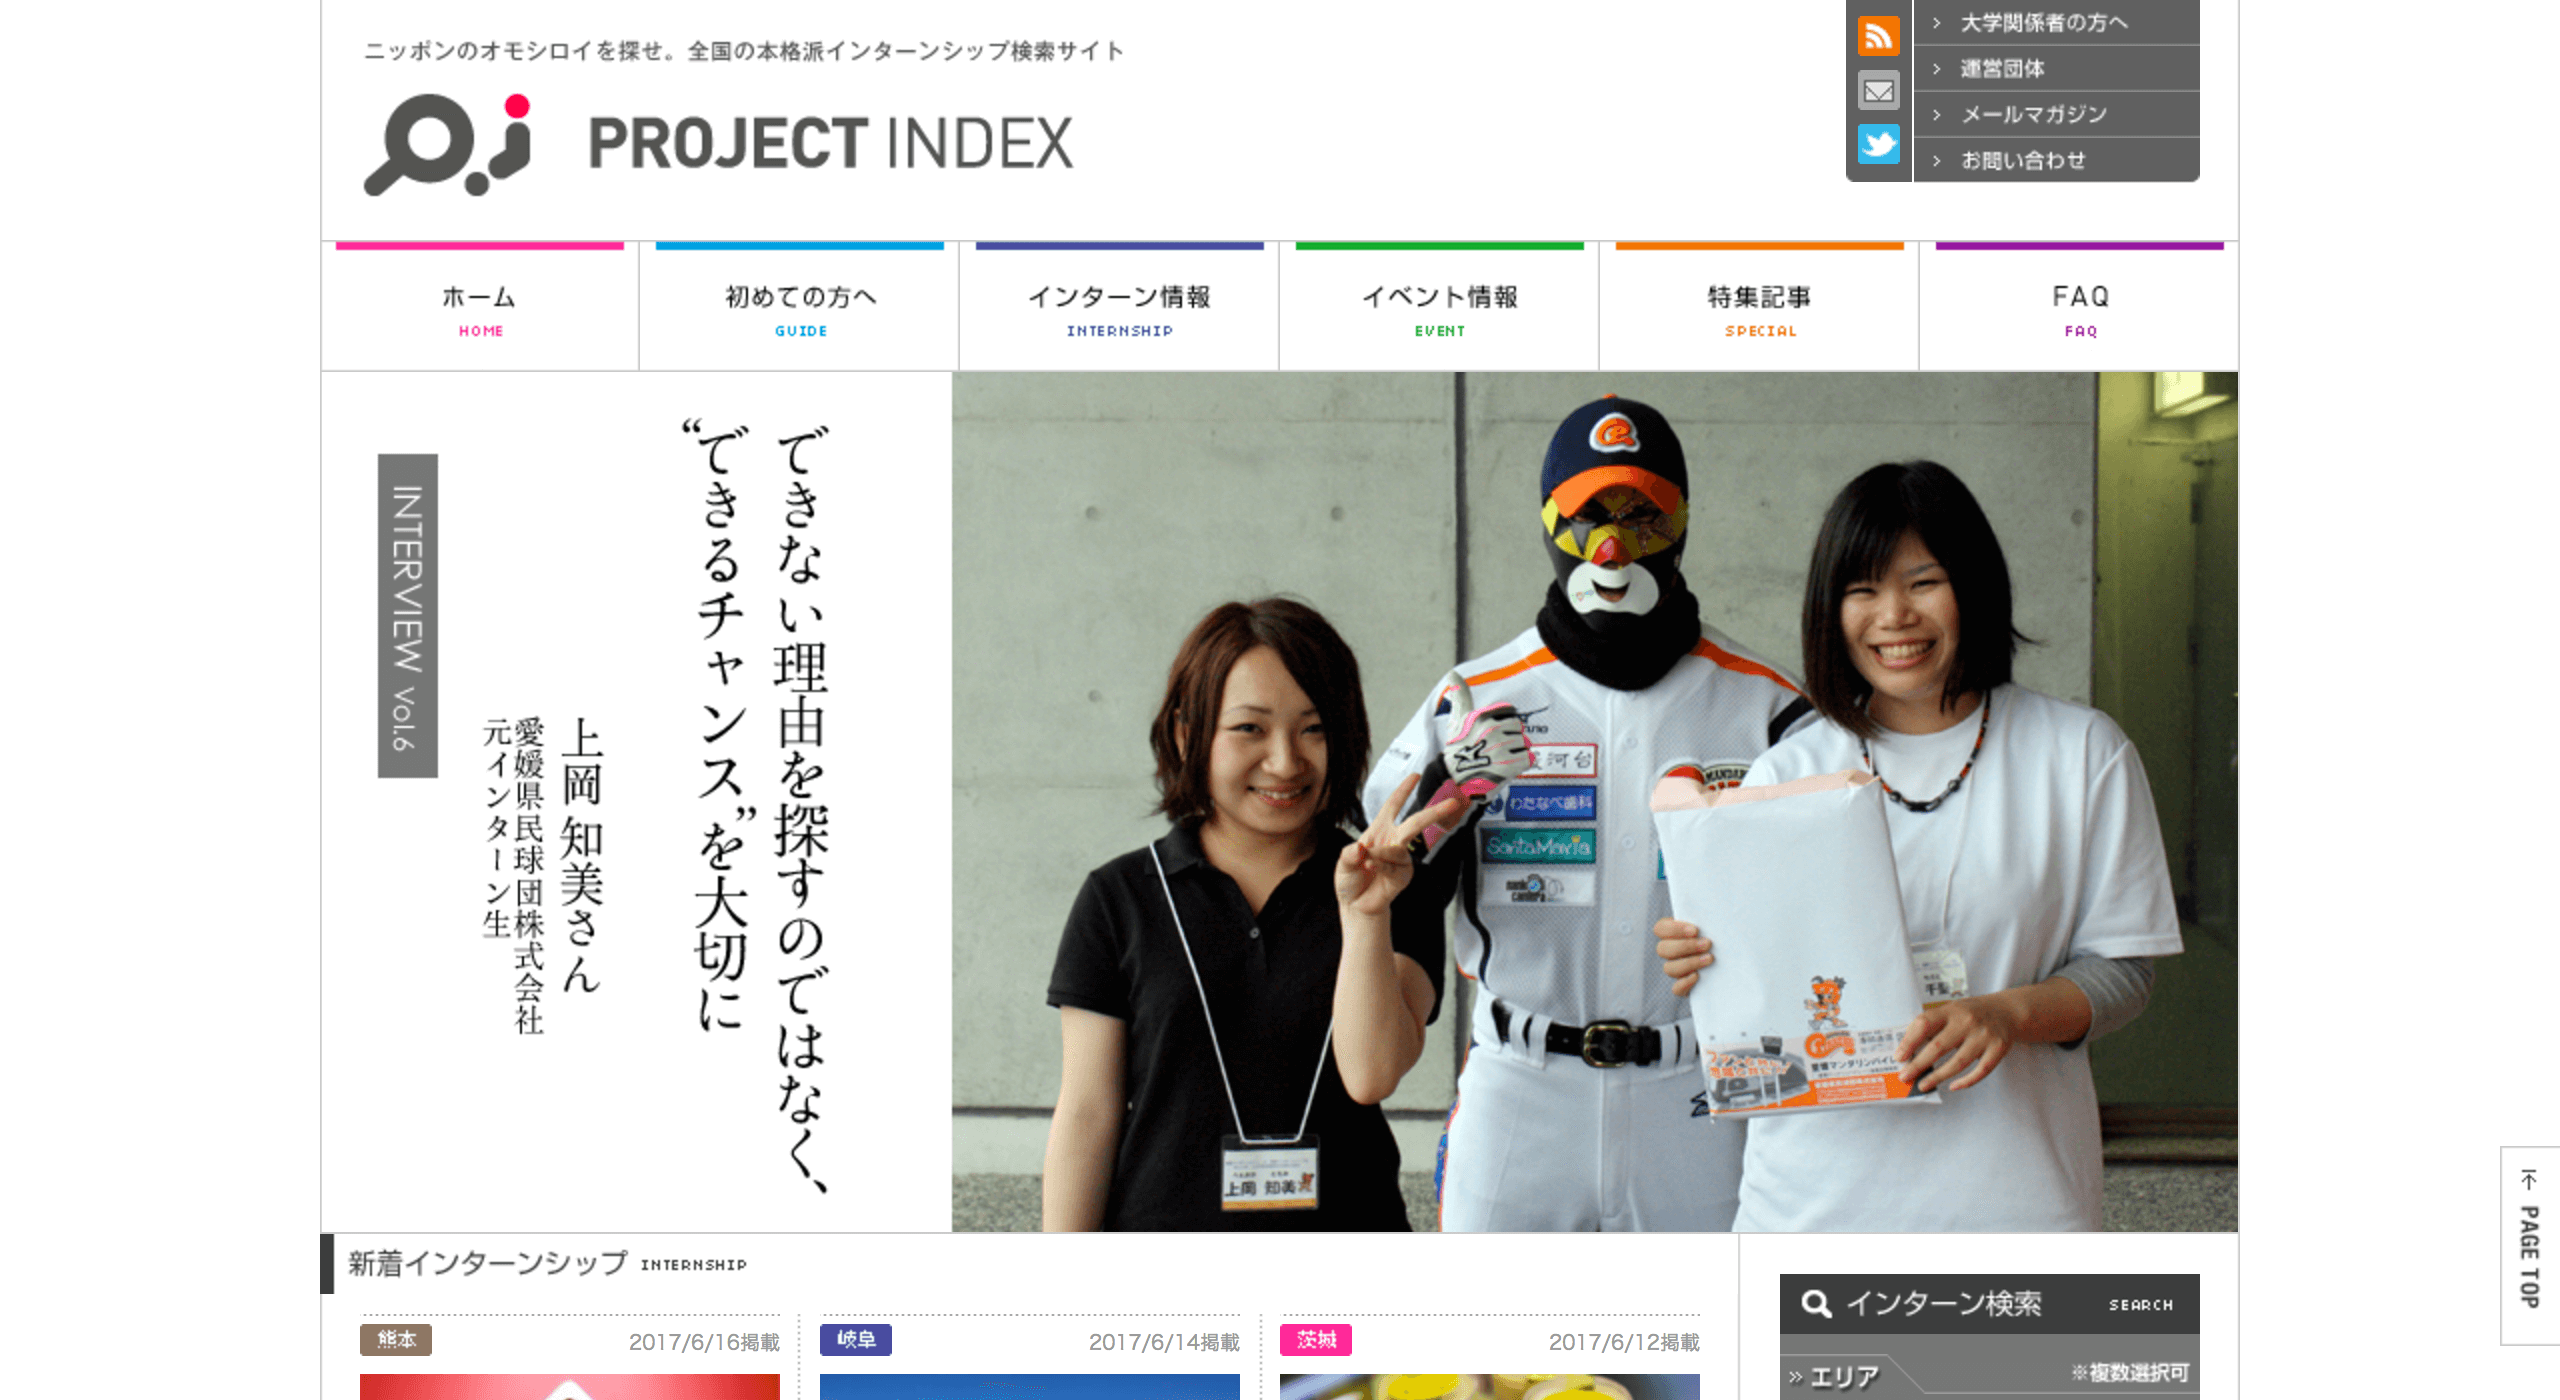 Project Index